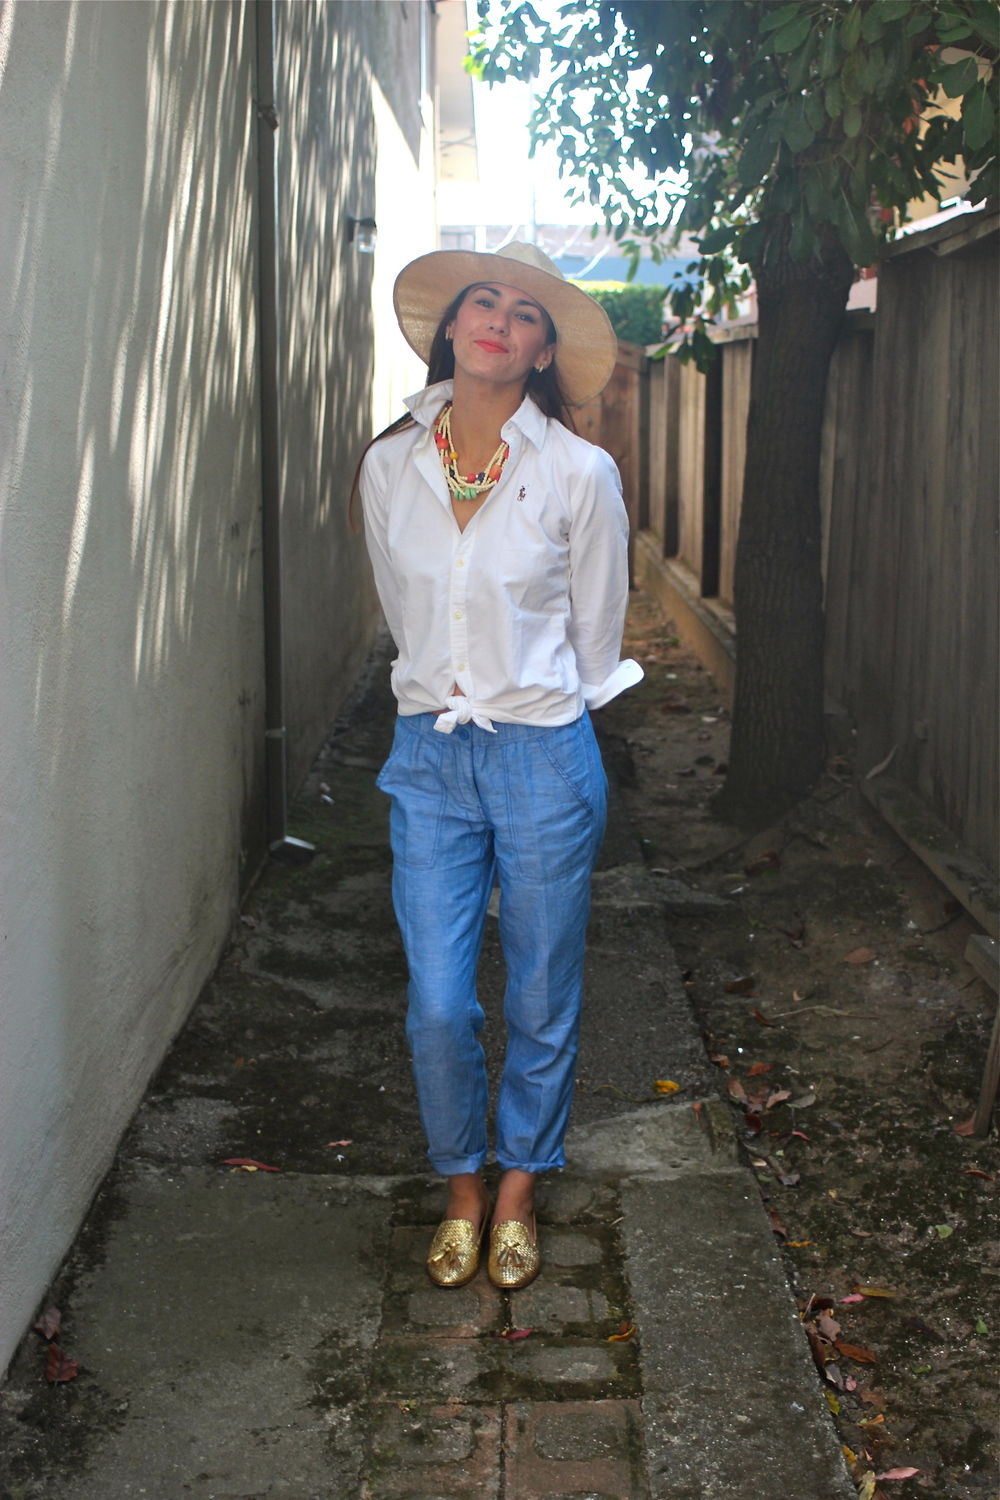 Hat: Sway ; Shirt: Ralph Lauren; Pants: J.Crew; Shoes: Prada; Necklace: Vintage, circa 1980s